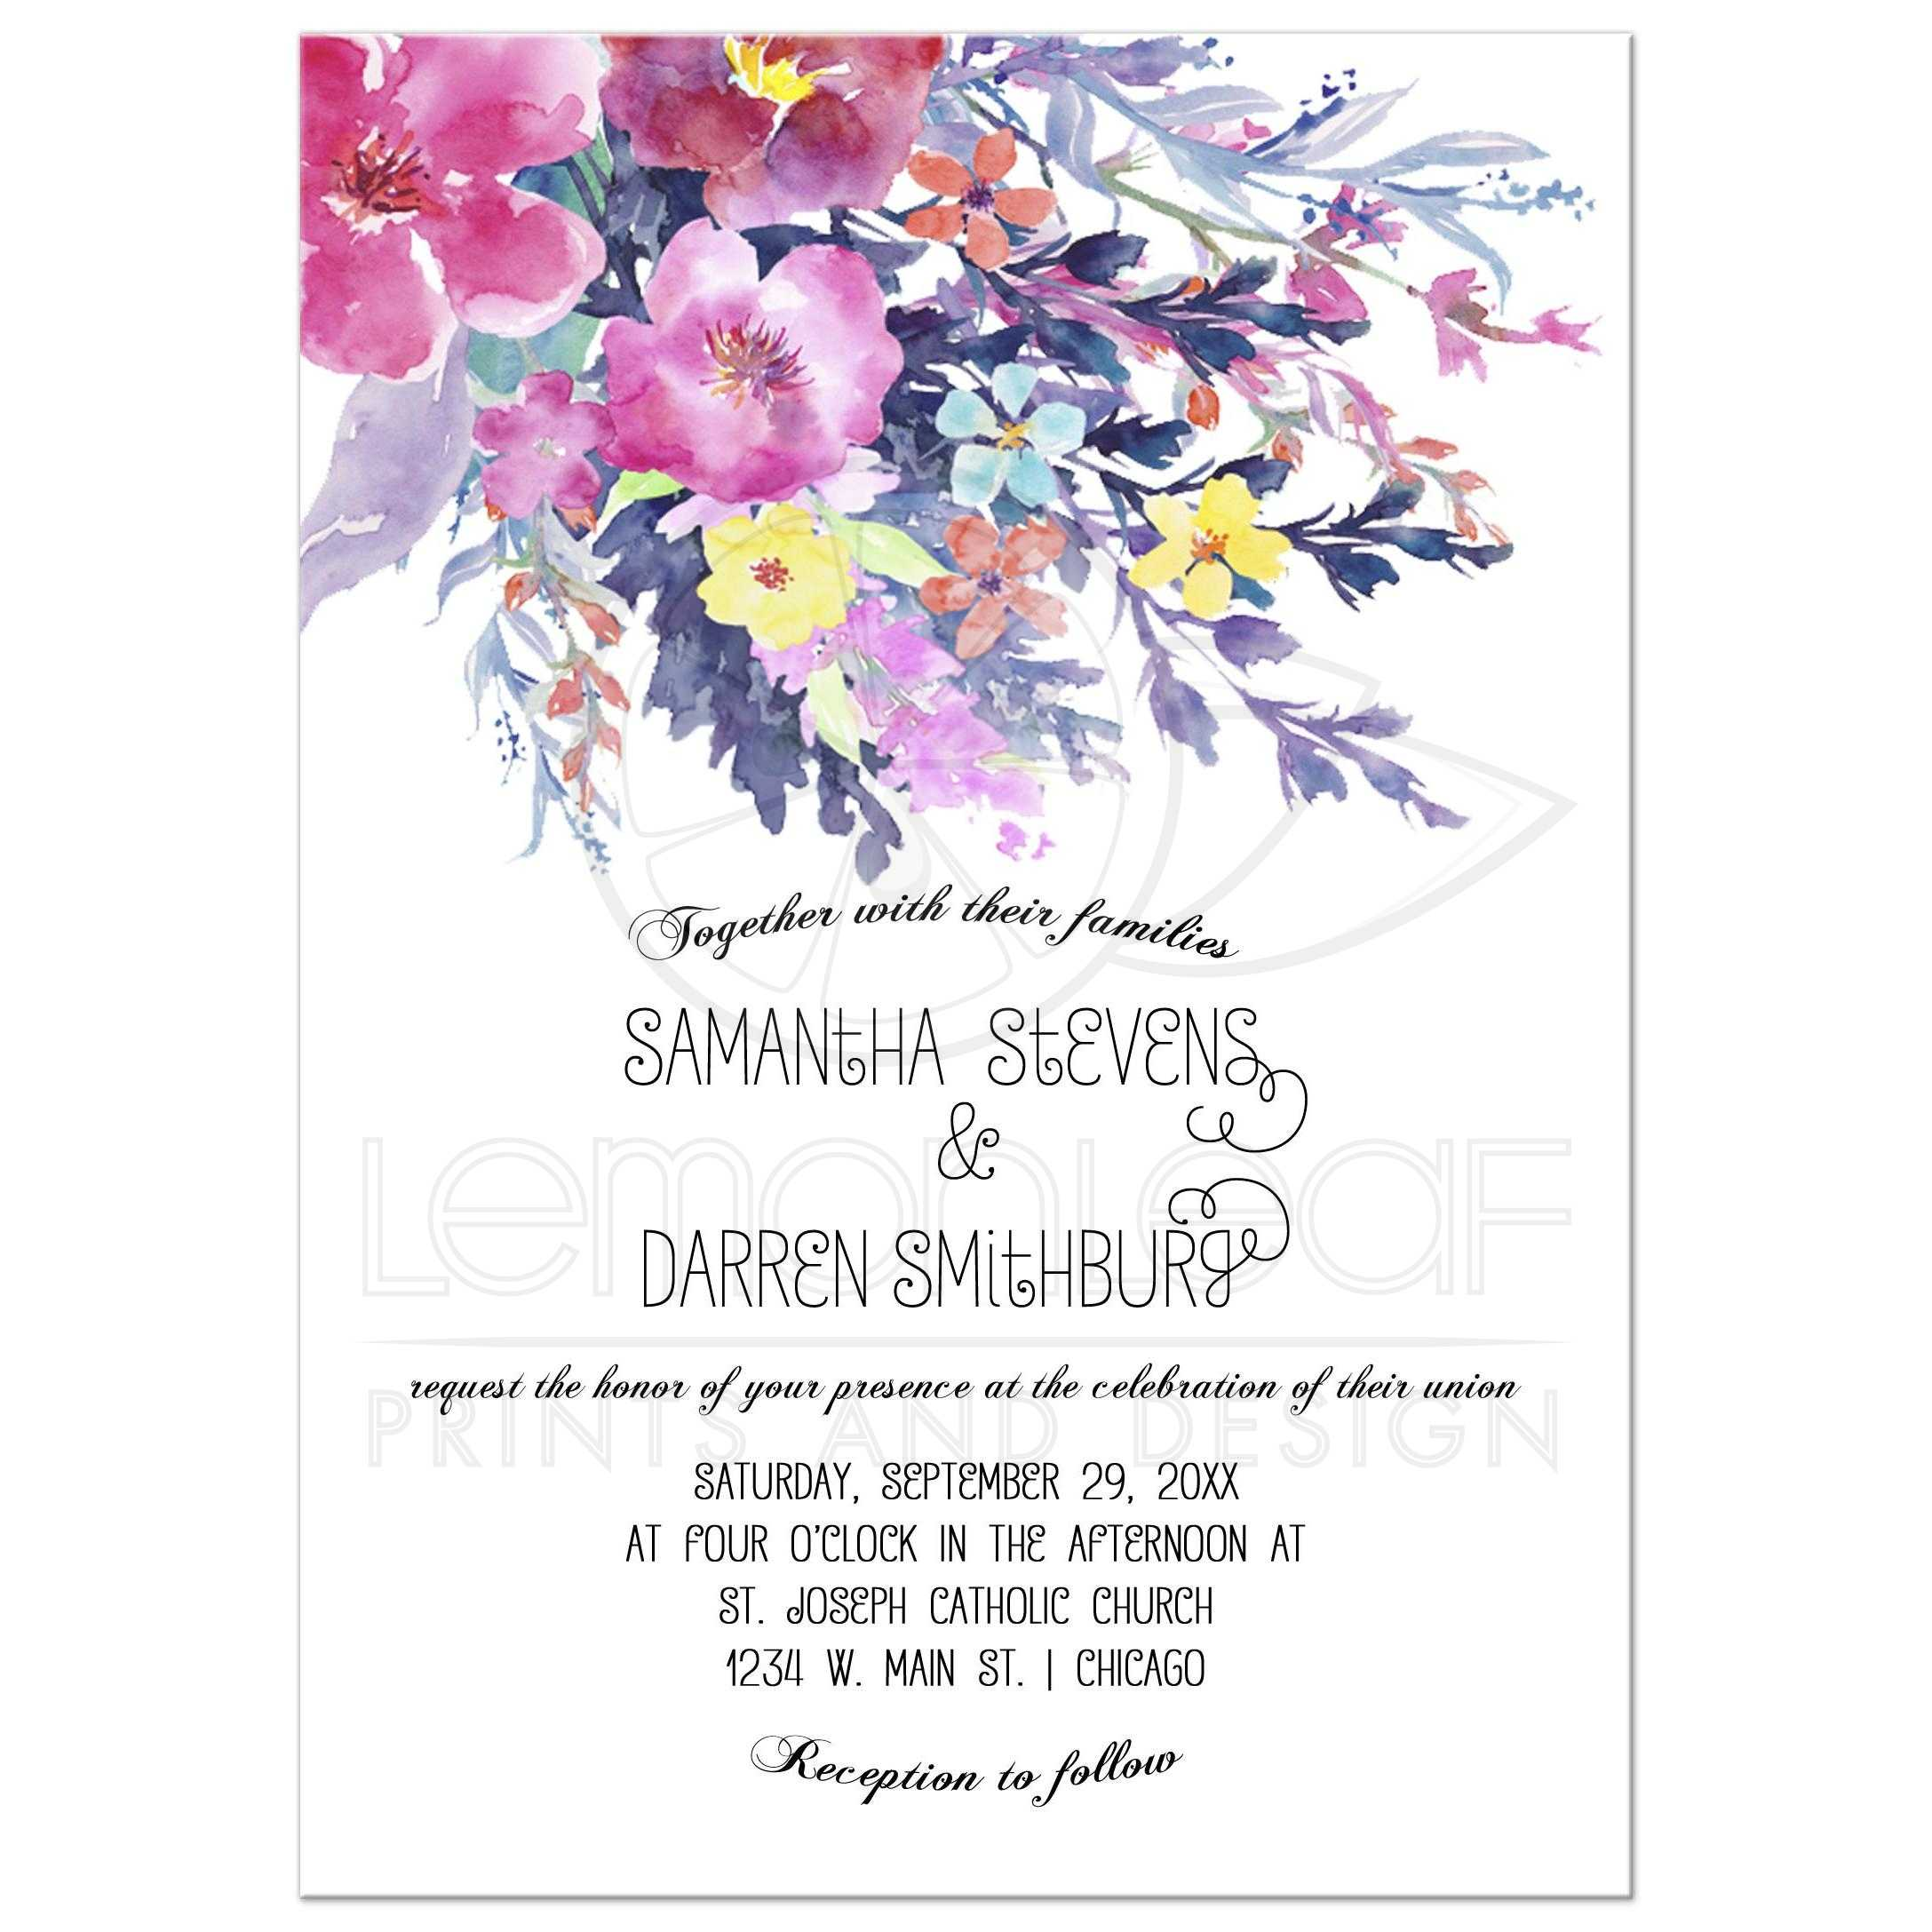 44606rectangleinvite5x725withbleedwatercolorontoparchedintroweddingfrontt1461680498: Wedding Invitations With Flowers At Websimilar.org